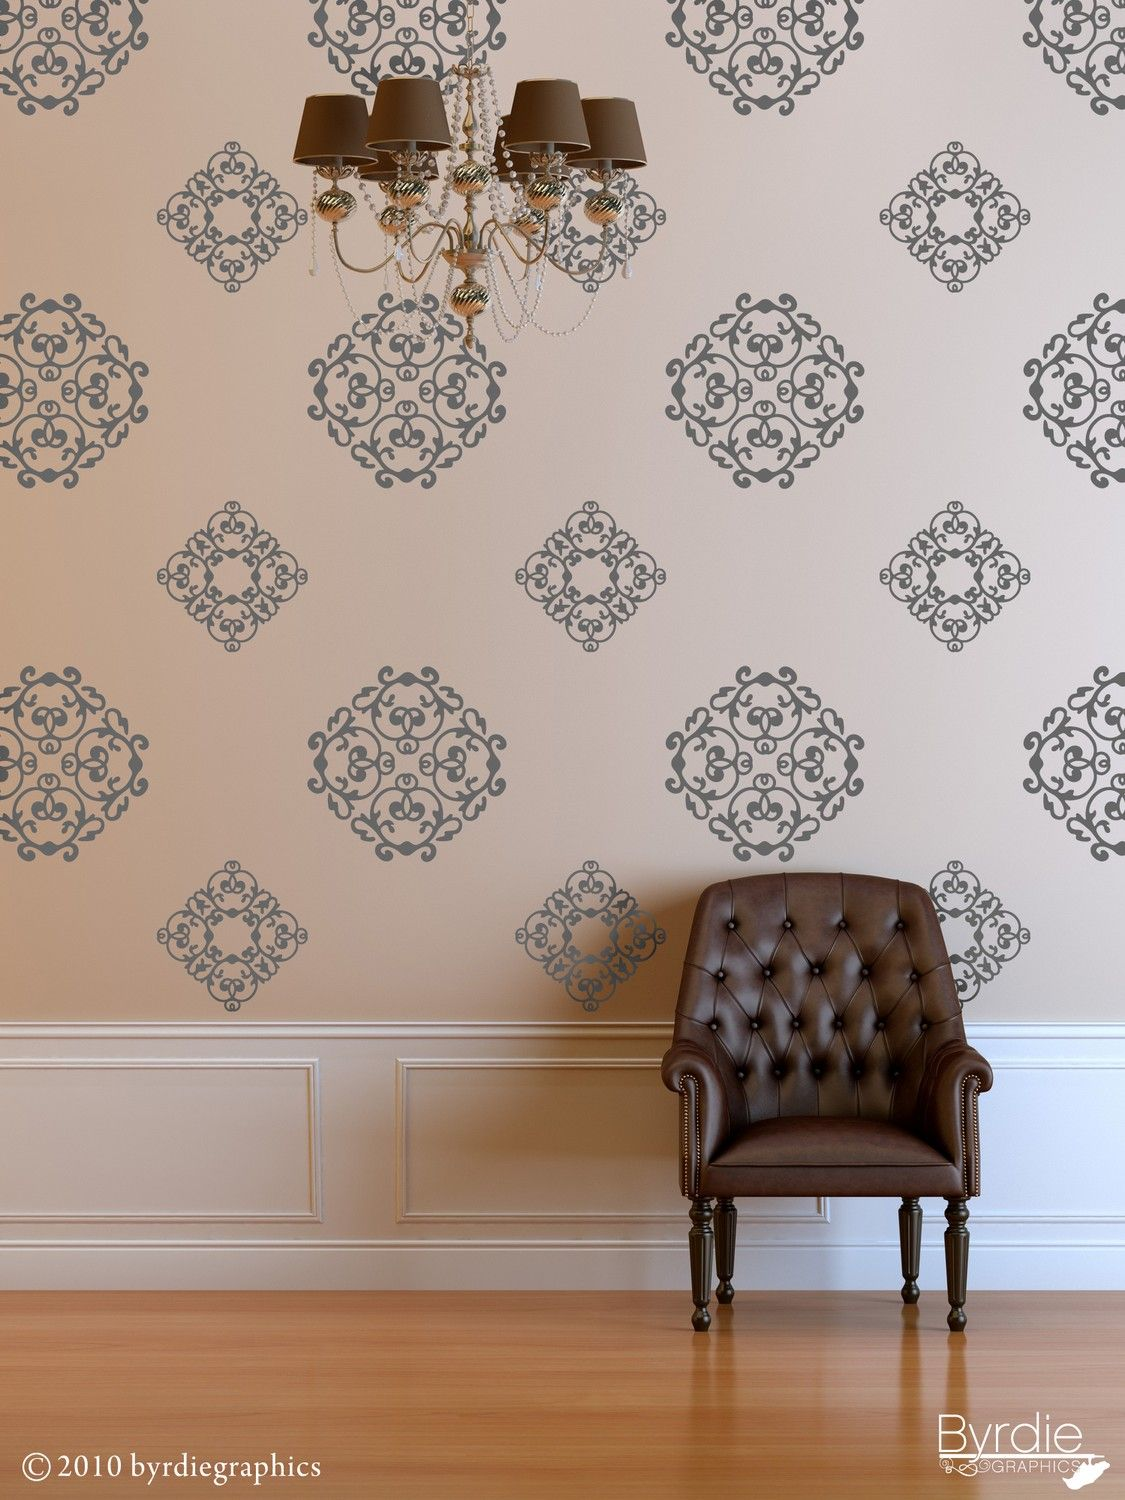 Vinyl Wall Decal, Classic Medallions   24 Graphics, Wallpaper, Stickers  Item 10034